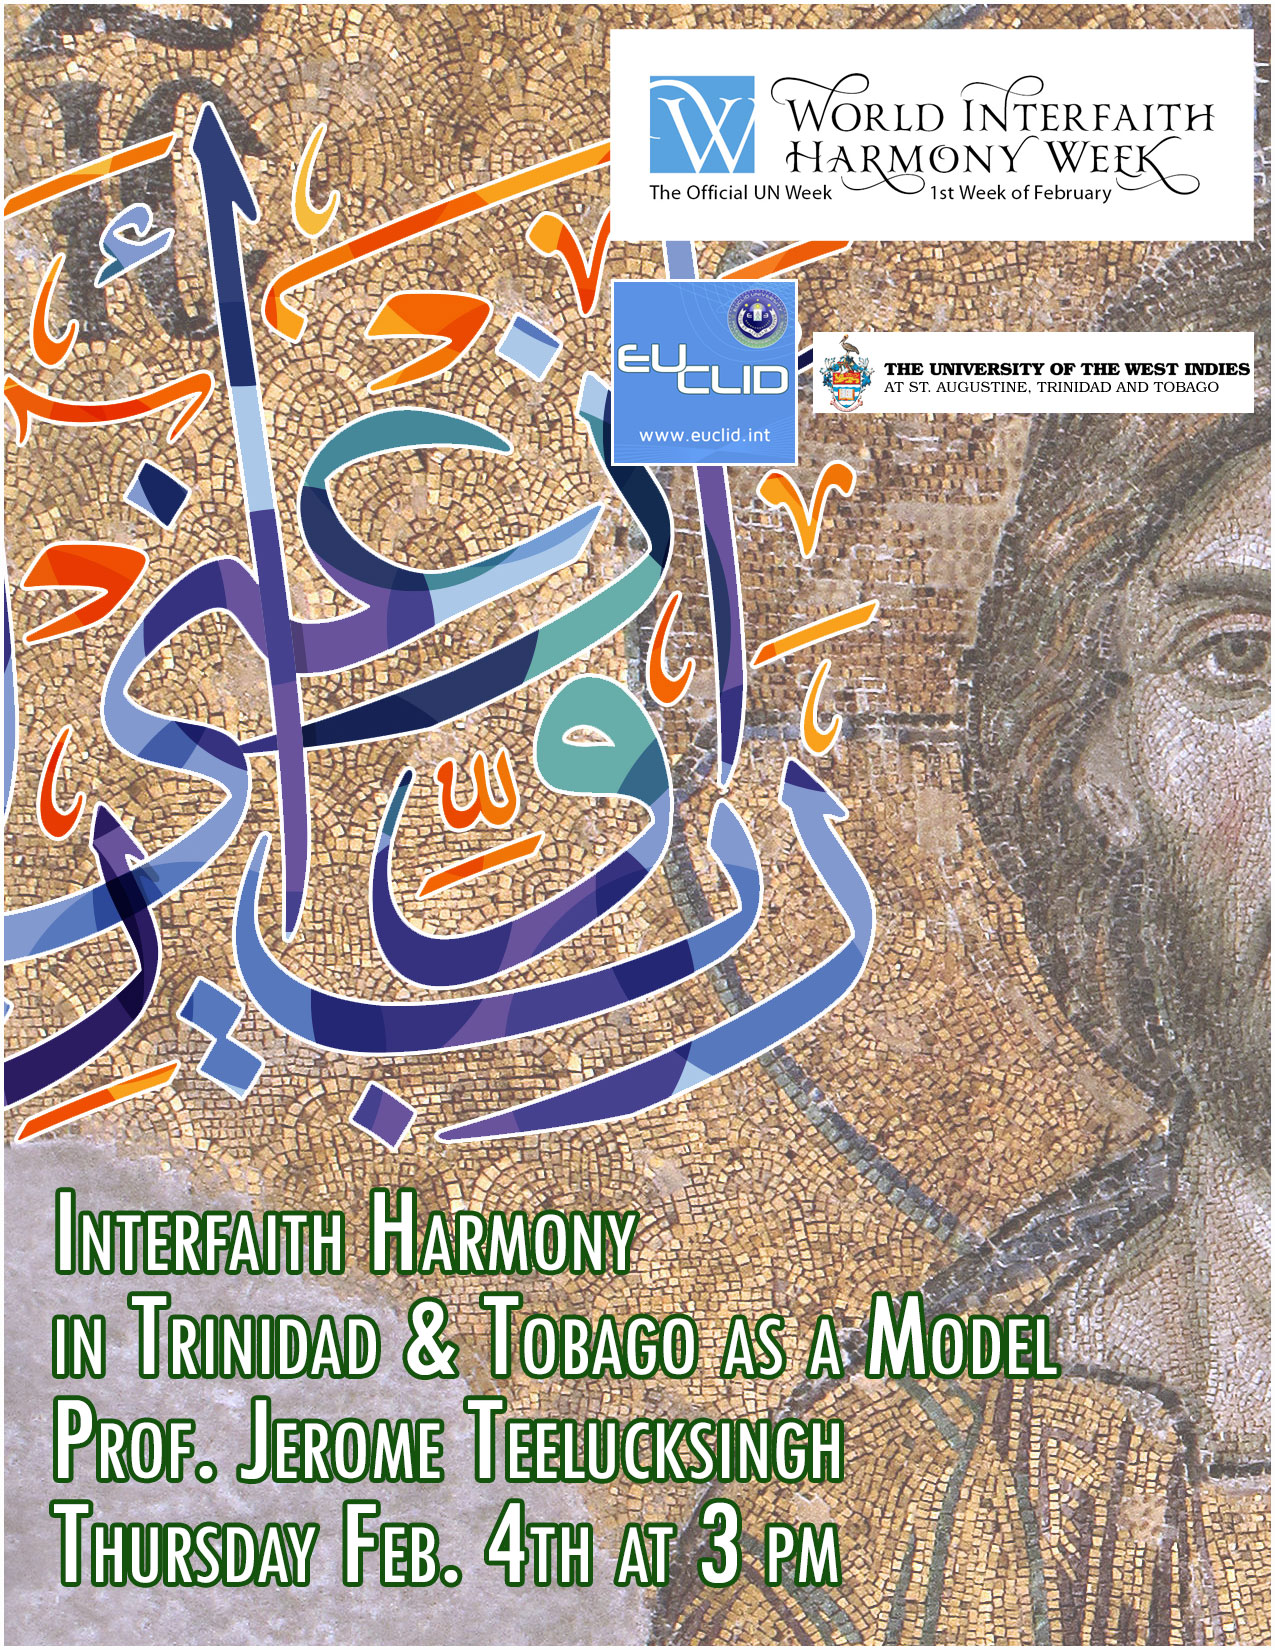 interfaith-poster-jerome.jpg